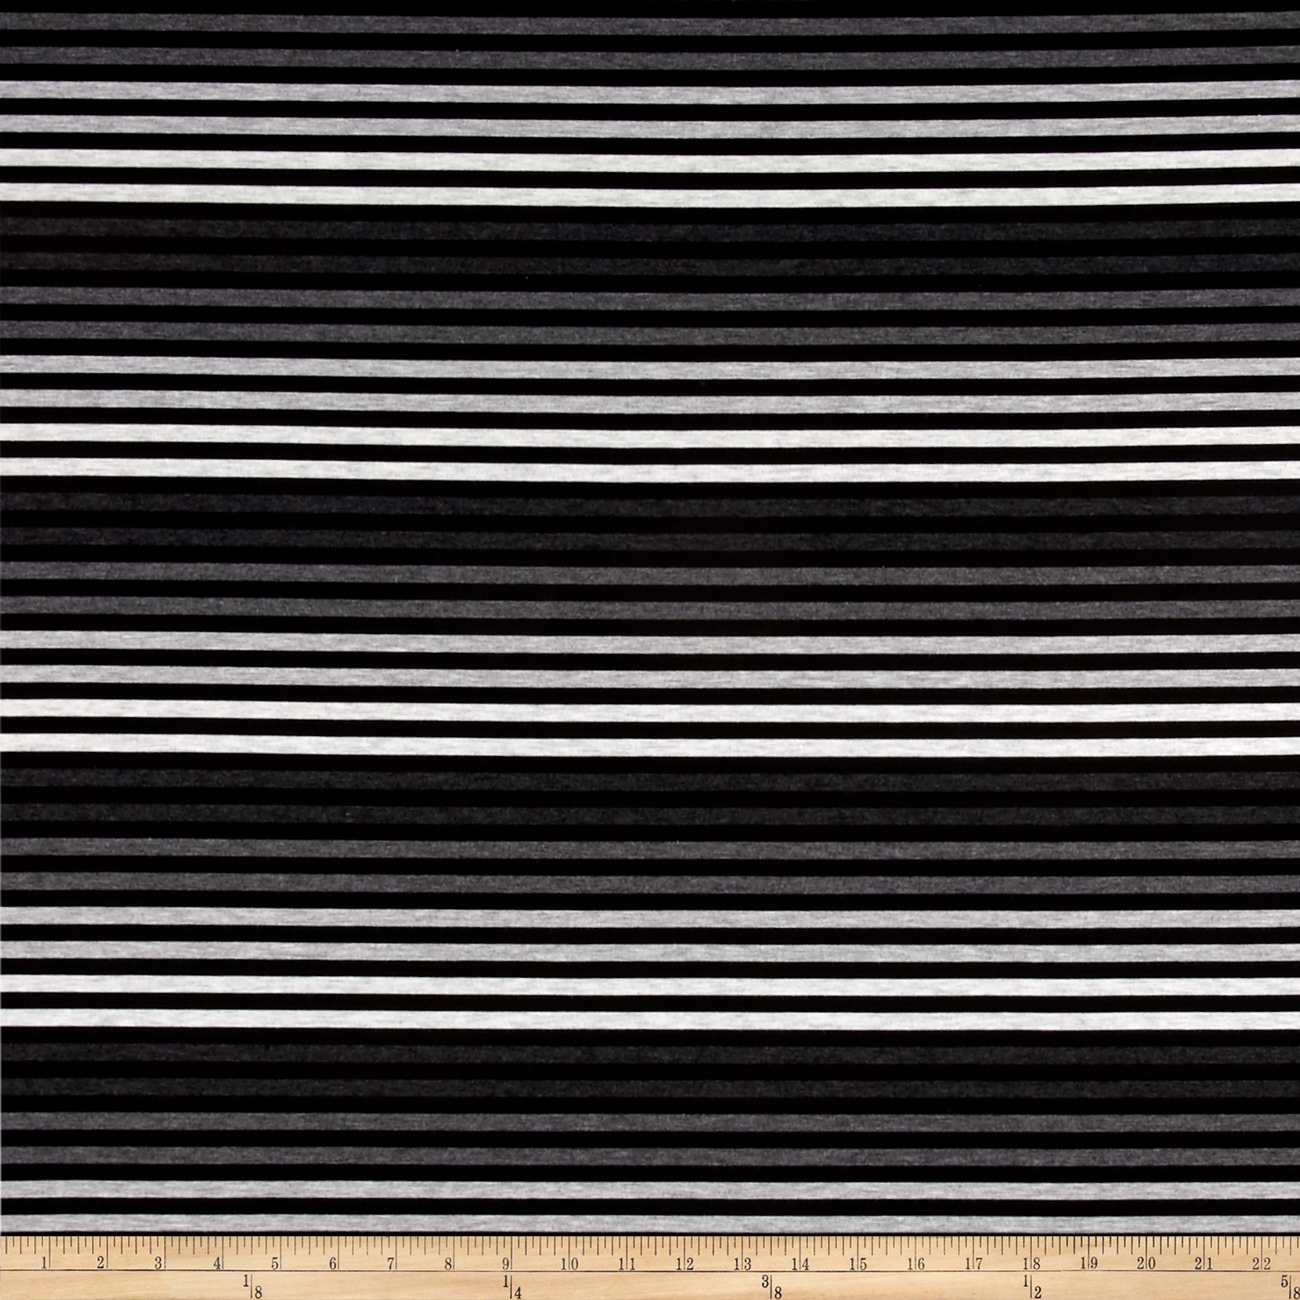 Image of Jersey Knit Ombre Stripes Gray & Black Fabric